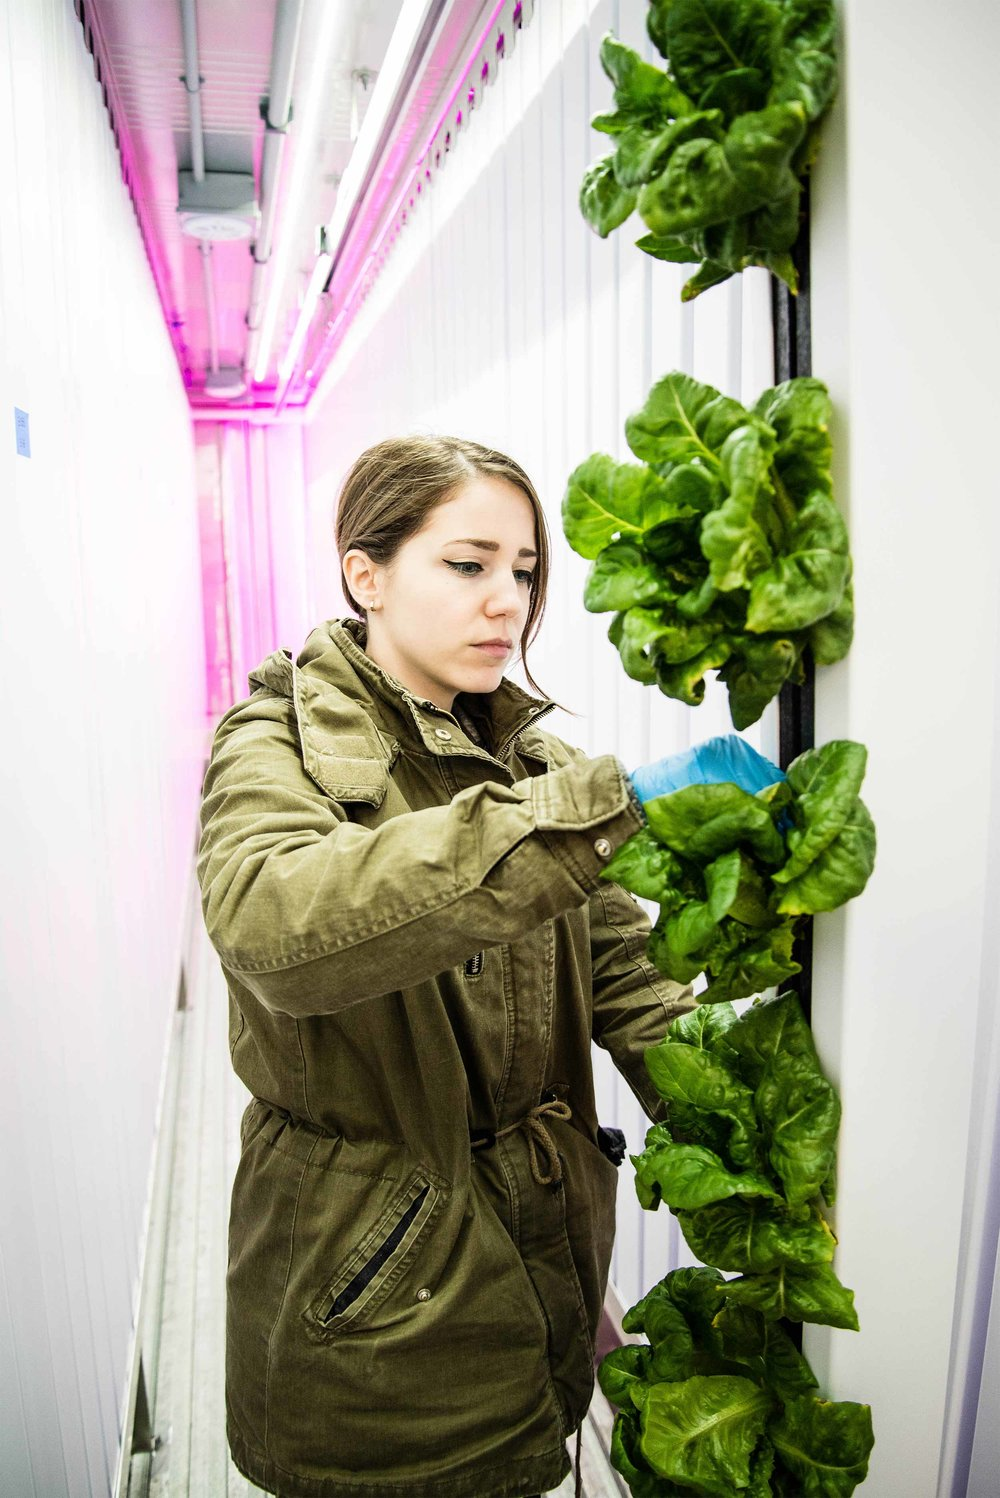 Freight Farms' hydroponic farmer, Francesca, harvests lettuce from on of the container farms' 265 crop columns.